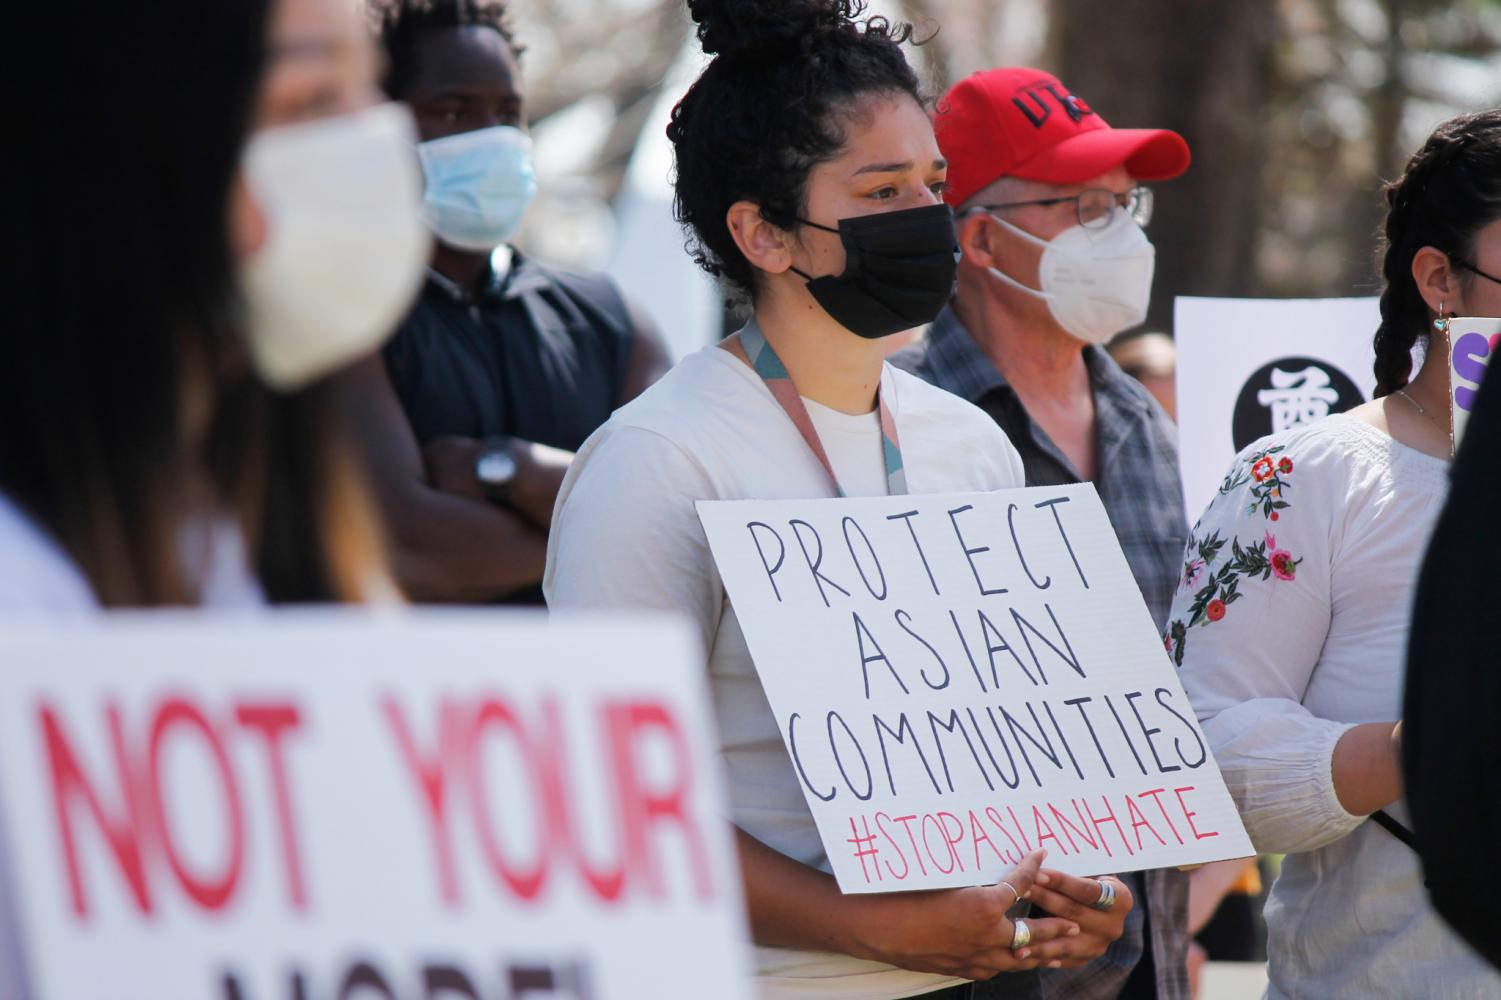 dailyutahchronicle.com: Two U Students Organize Protest in Support of Asian Americans – The Daily Utah Chronicle